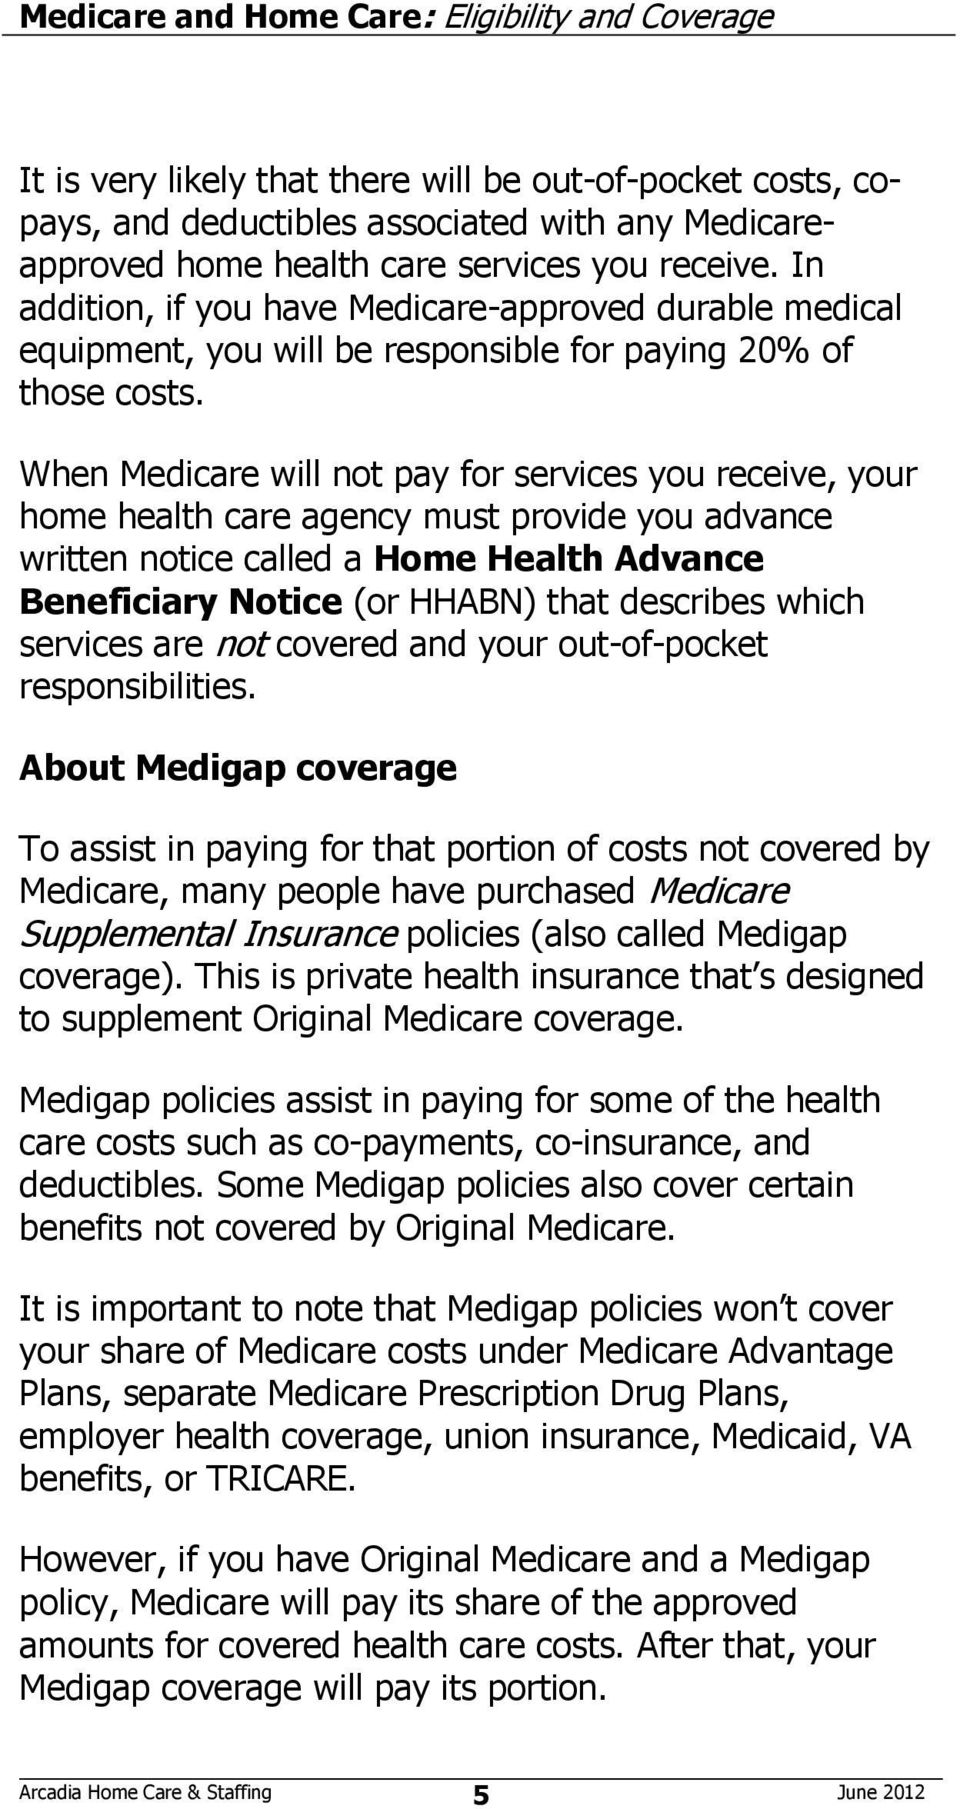 When Medicare will not pay for services you receive, your home health care agency must provide you advance written notice called a Home Health Advance Beneficiary Notice (or HHABN) that describes